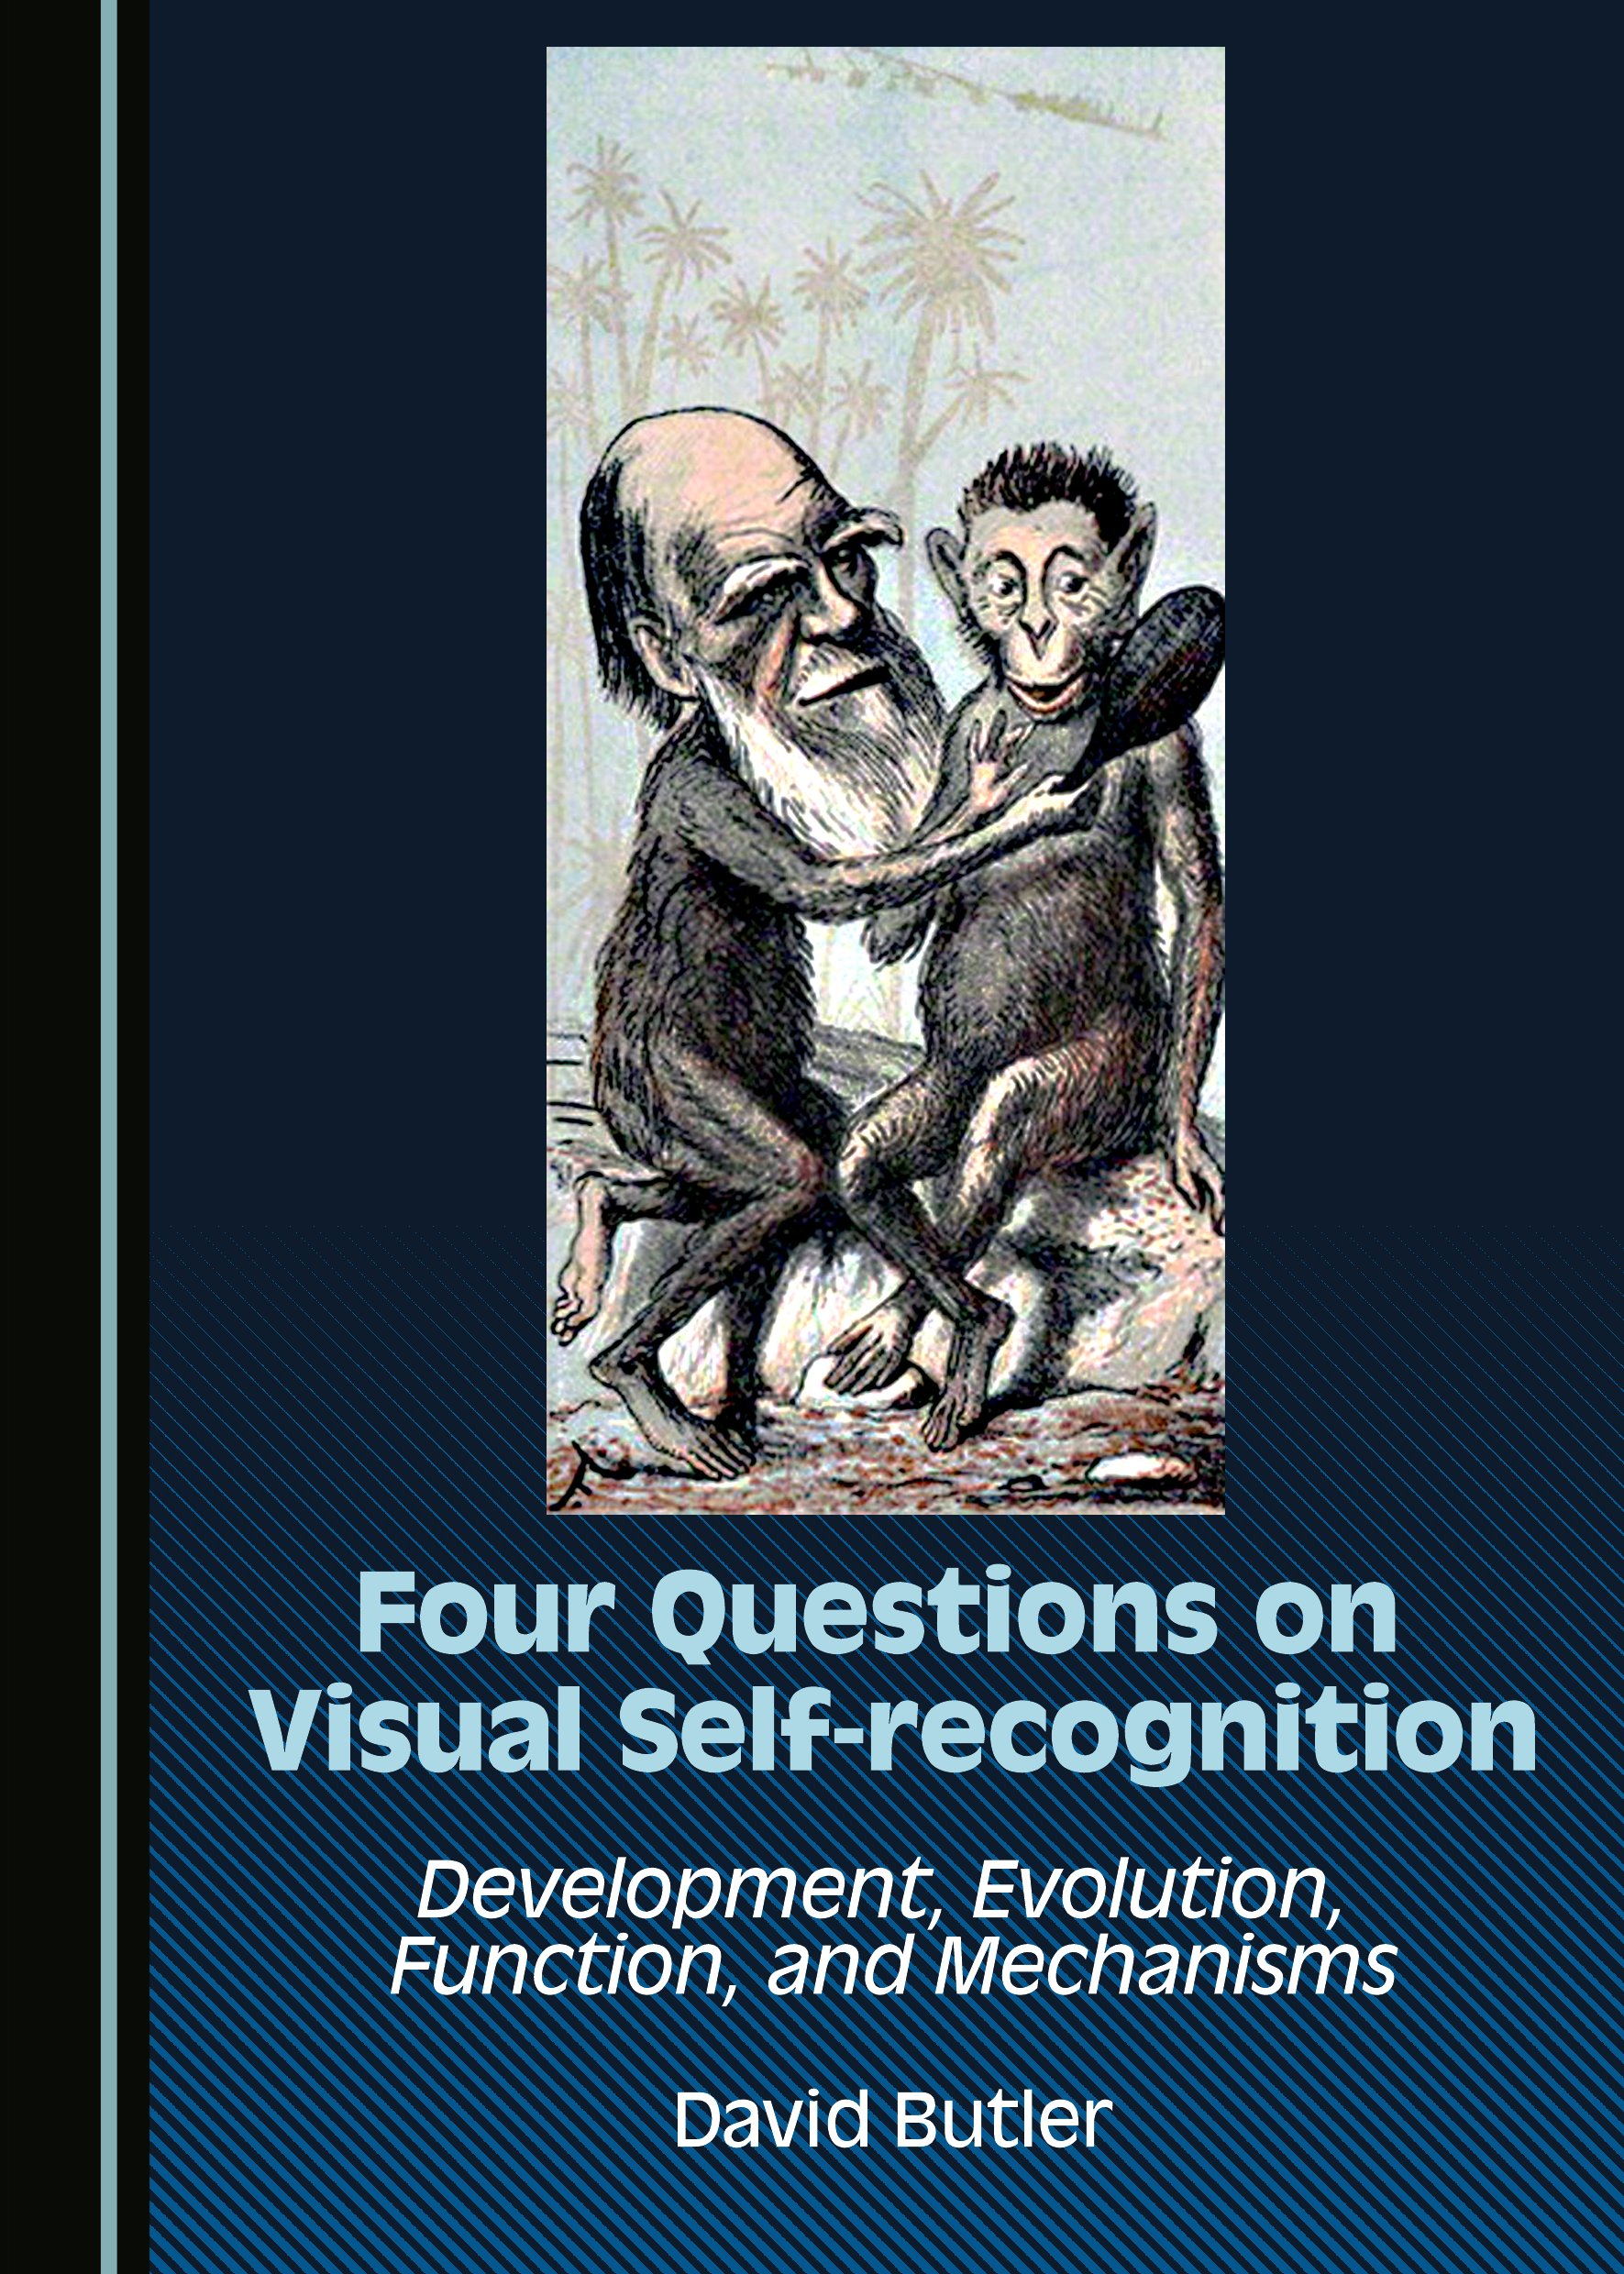 Four Questions on Visual Self-recognition: Development, Evolution, Function, and Mechanisms